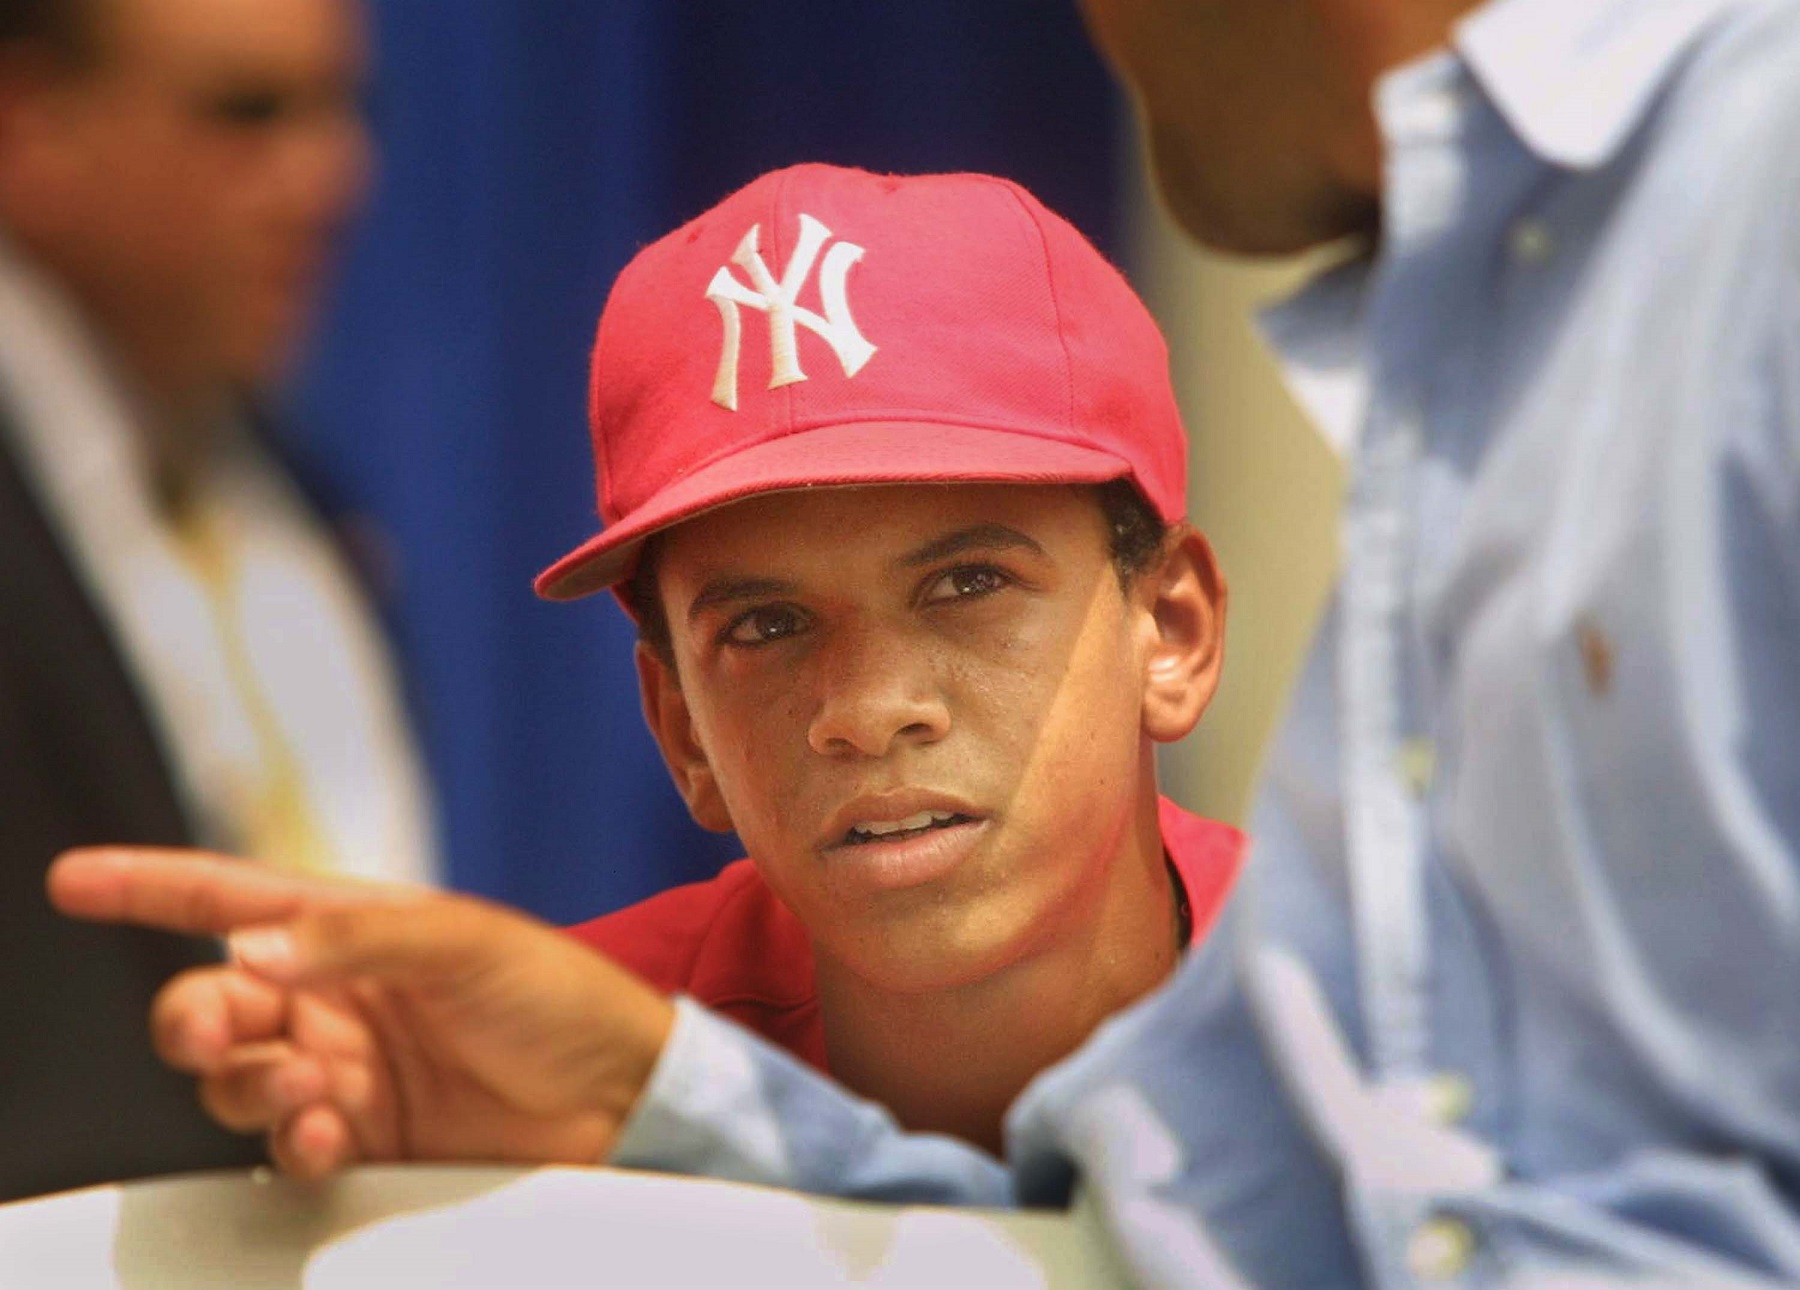 What Ever Happened to Little League World Series Star Danny Almonte?